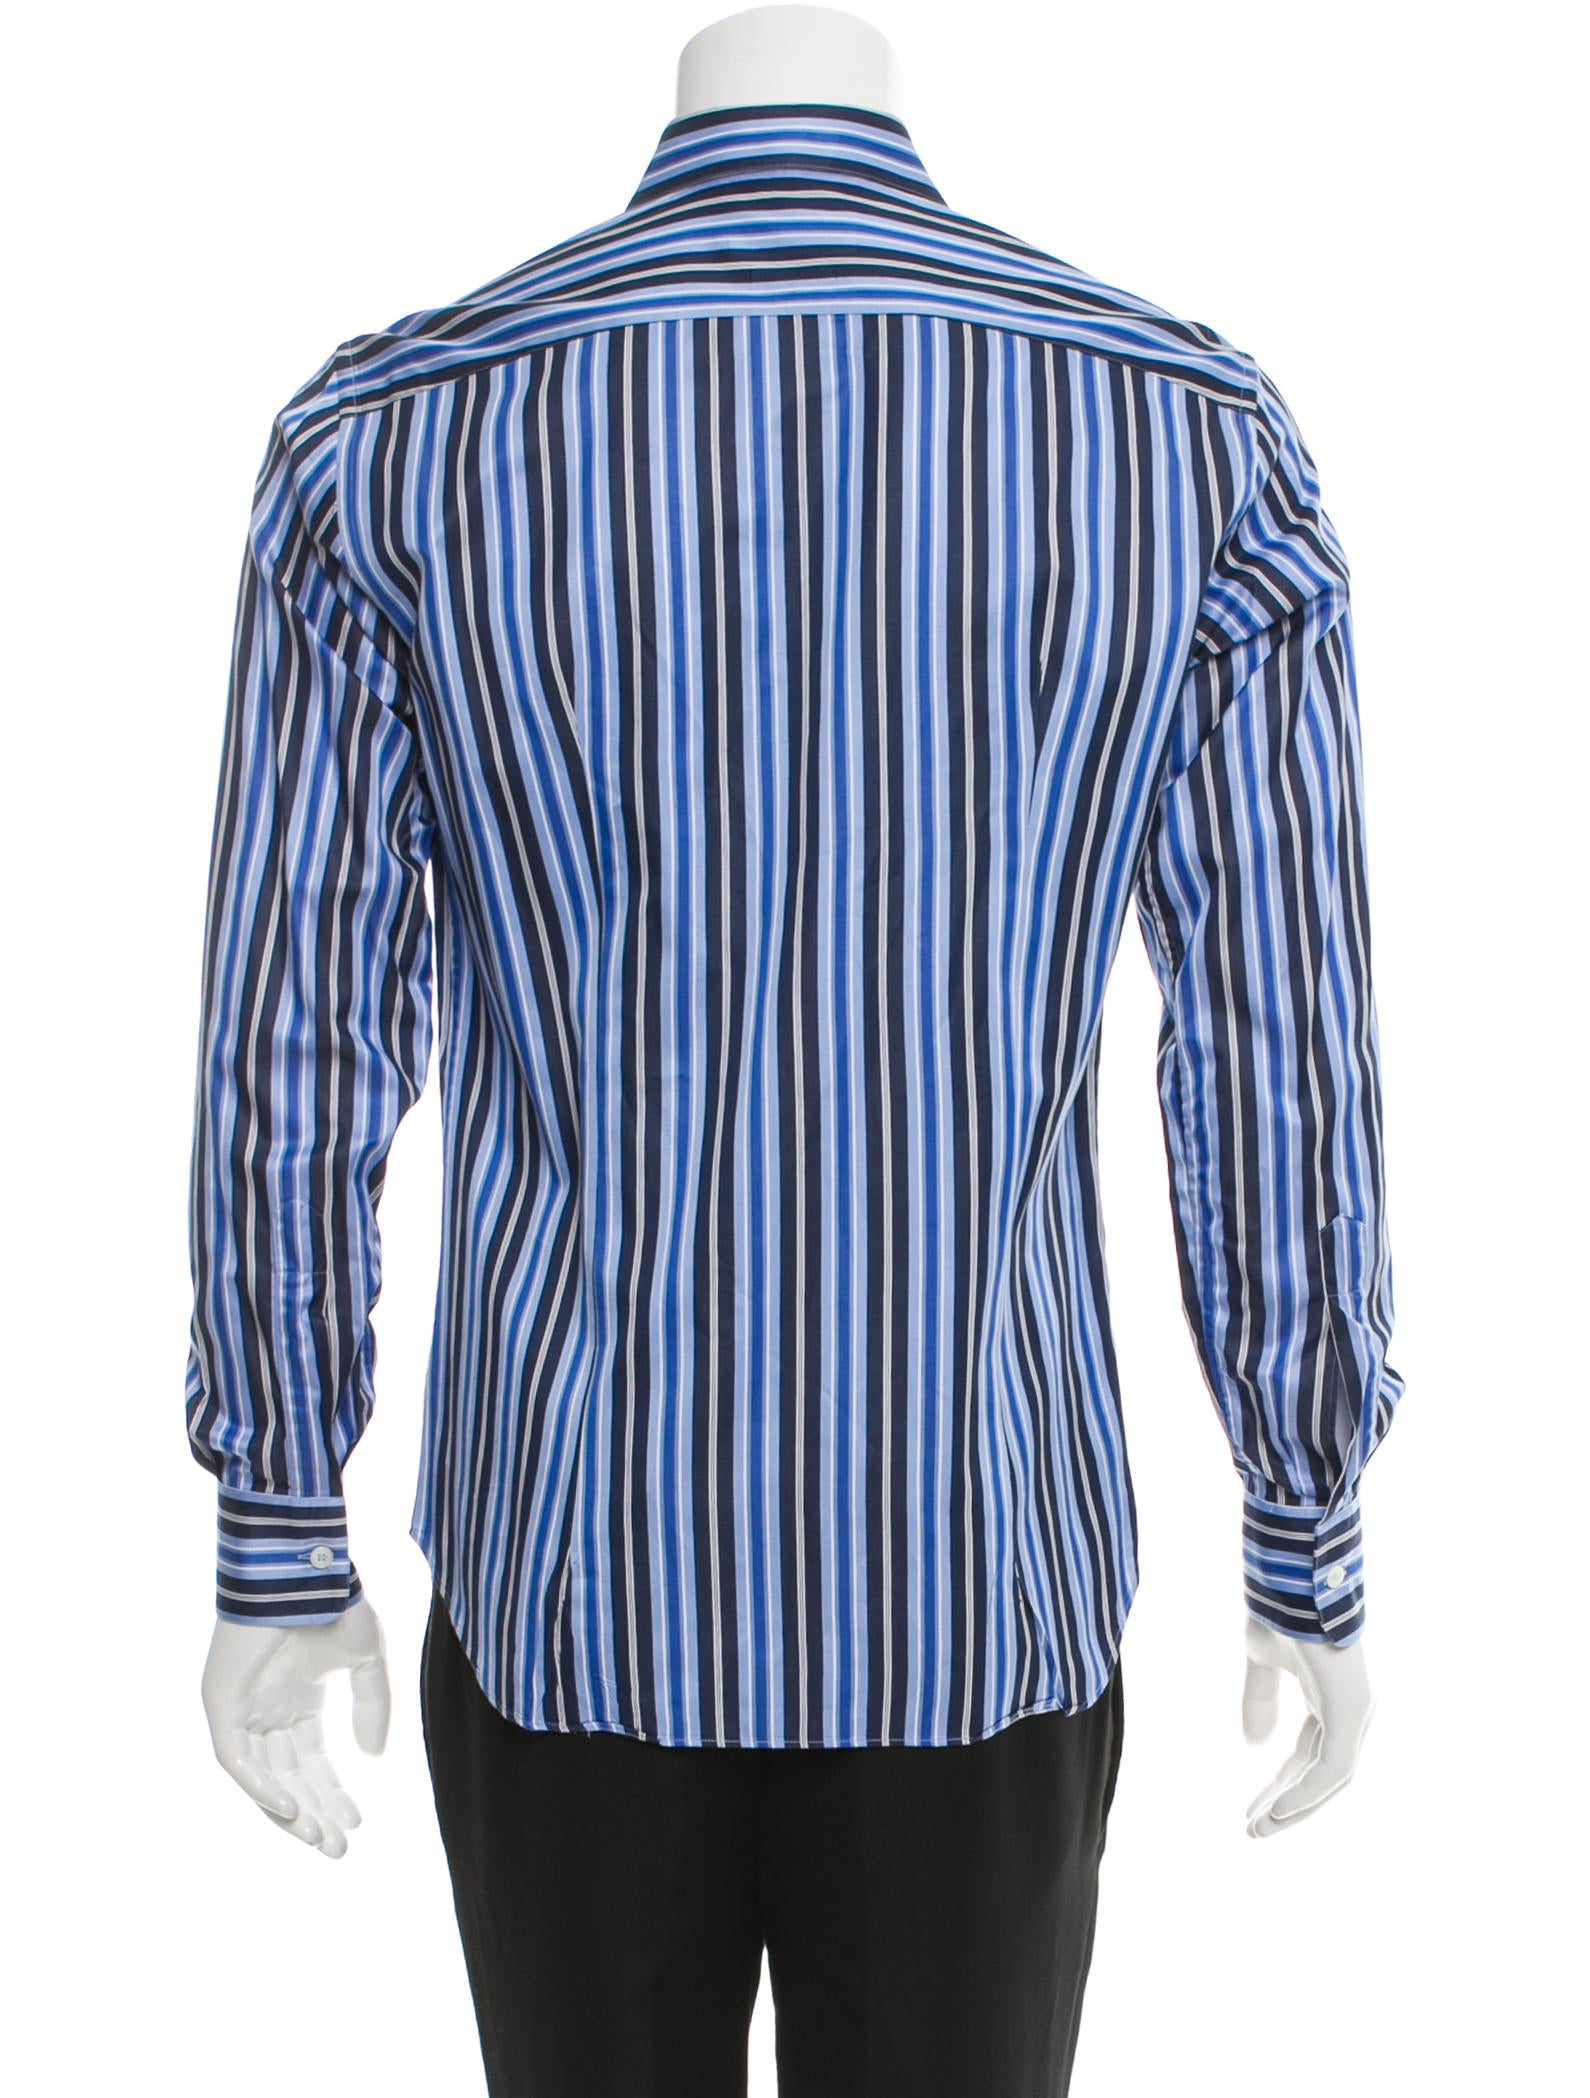 salvatore ferragamo stripe french cuff shirt clothing. Black Bedroom Furniture Sets. Home Design Ideas